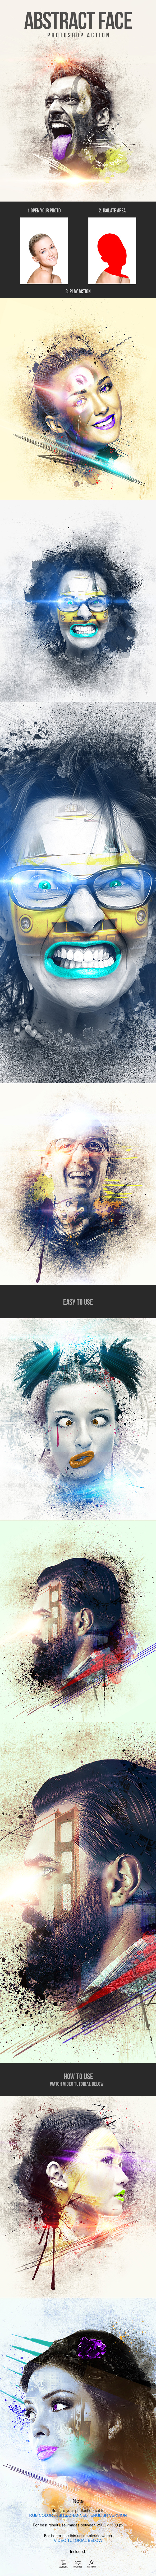 GraphicRiver Abstract Face Photoshop Action 21088175